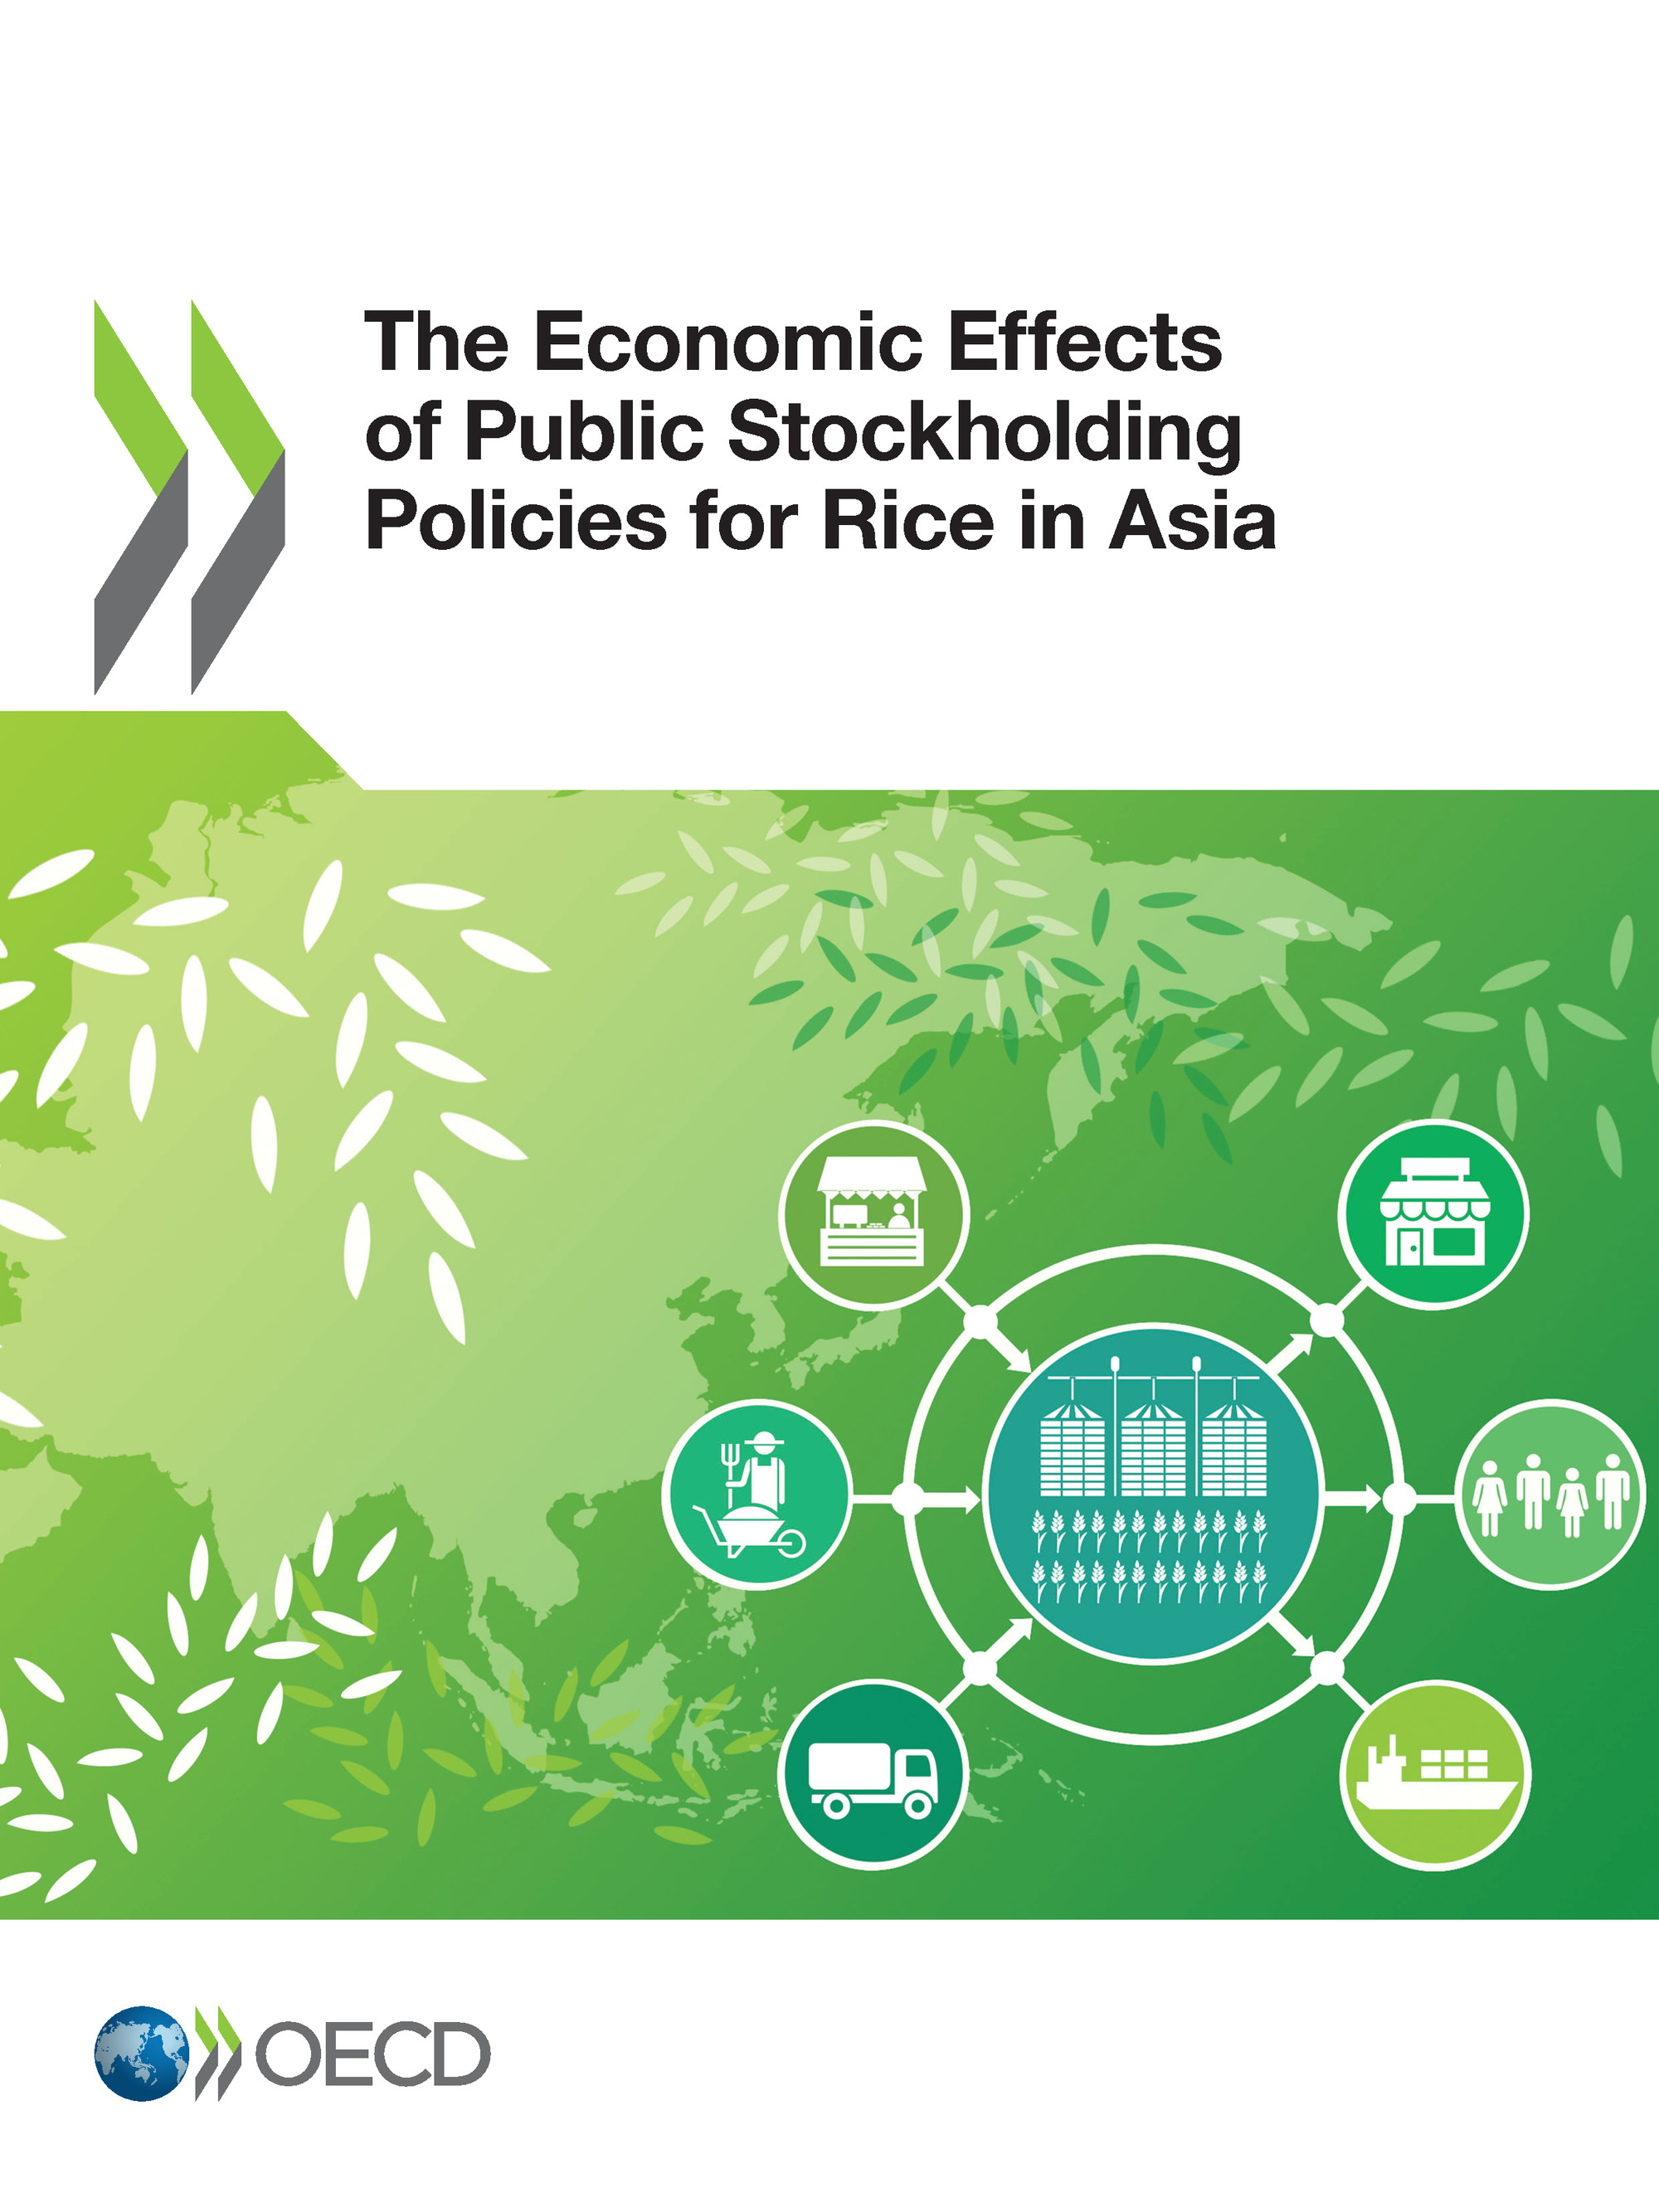 The Economic Effects of Public Stockholding Policies for Rice in Asia De Collective Collective - OCDE / OECD